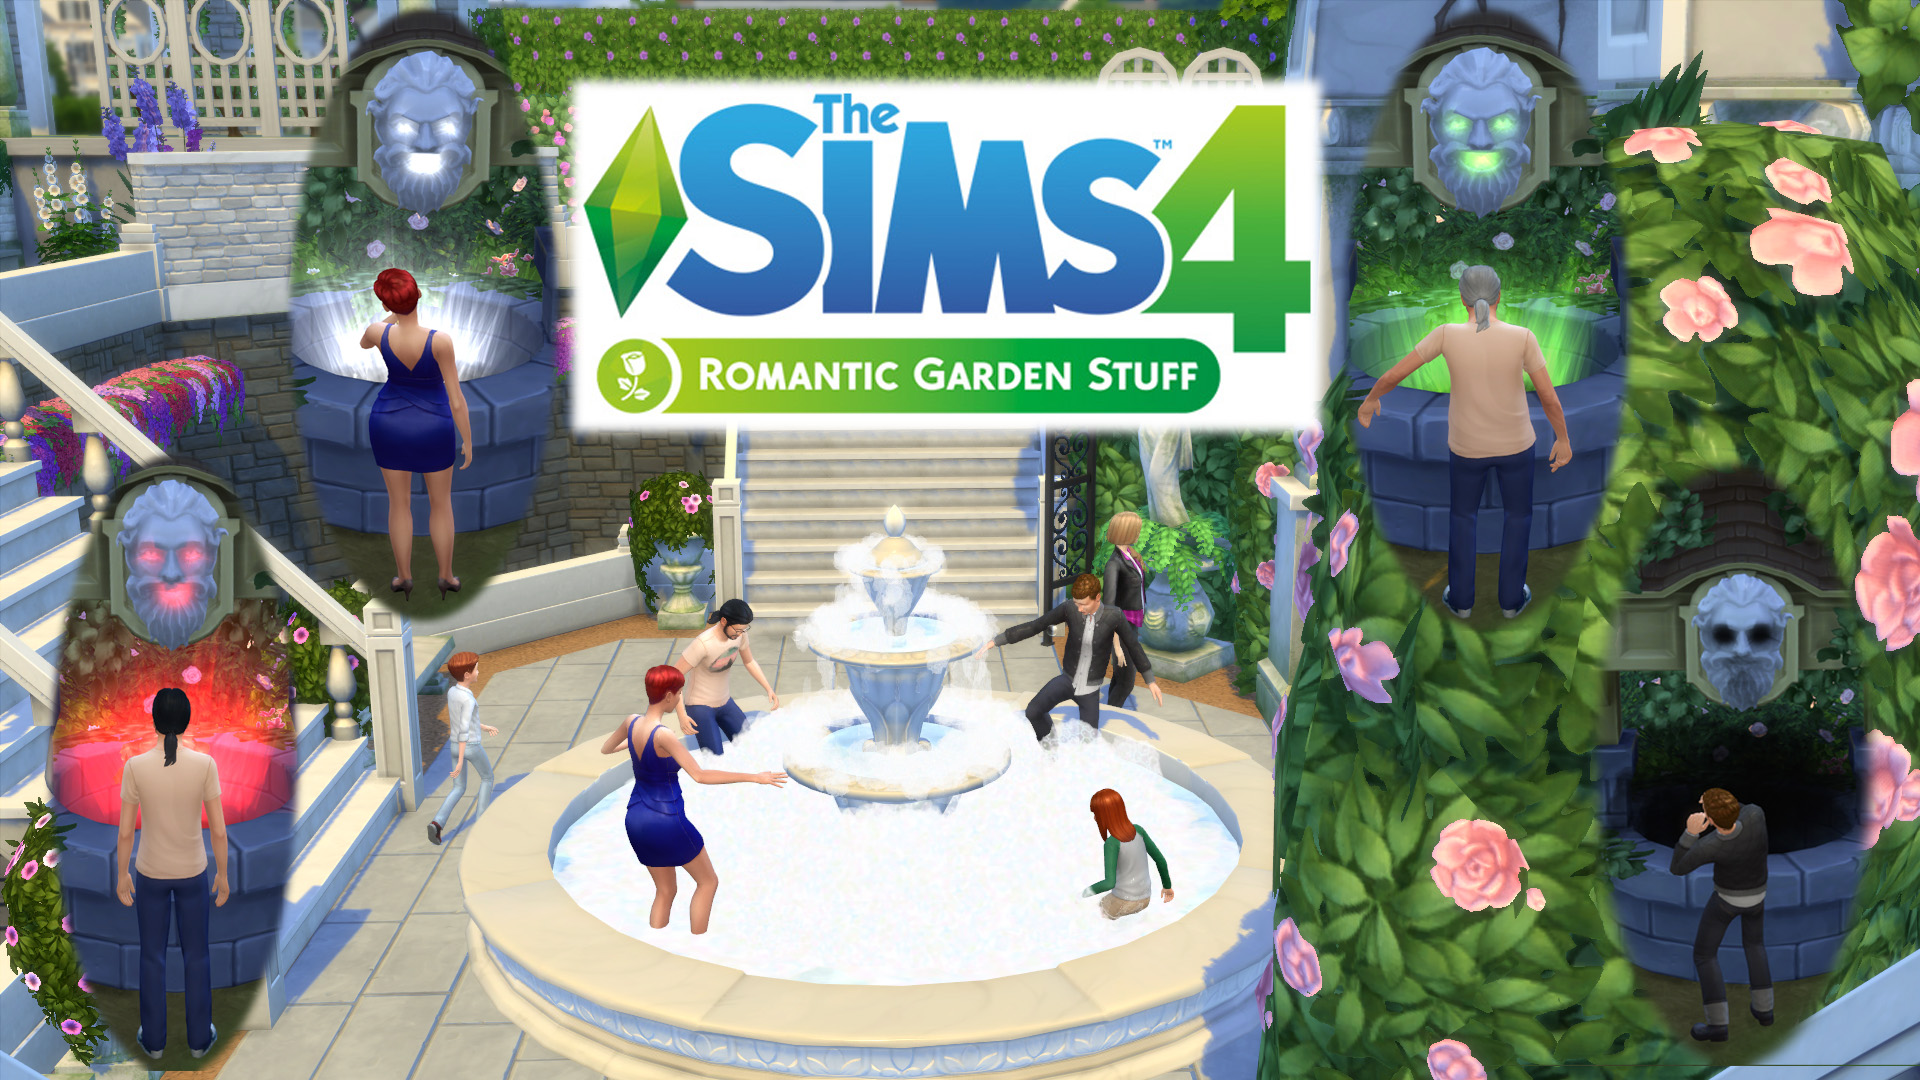 The Sims 4 Romantic Garden Stuff Pack Is The Sixth Stuff Pack Released For  The Sims 4.